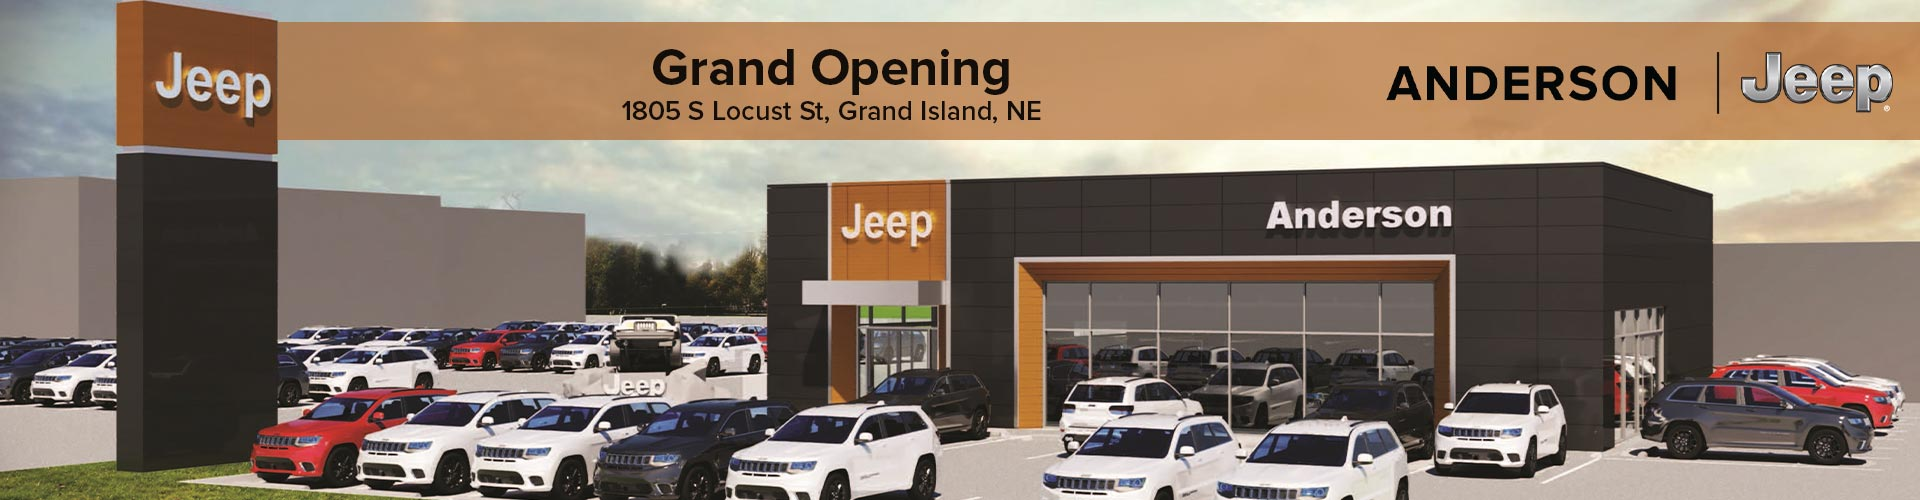 Anderson Jeep Grand Opening